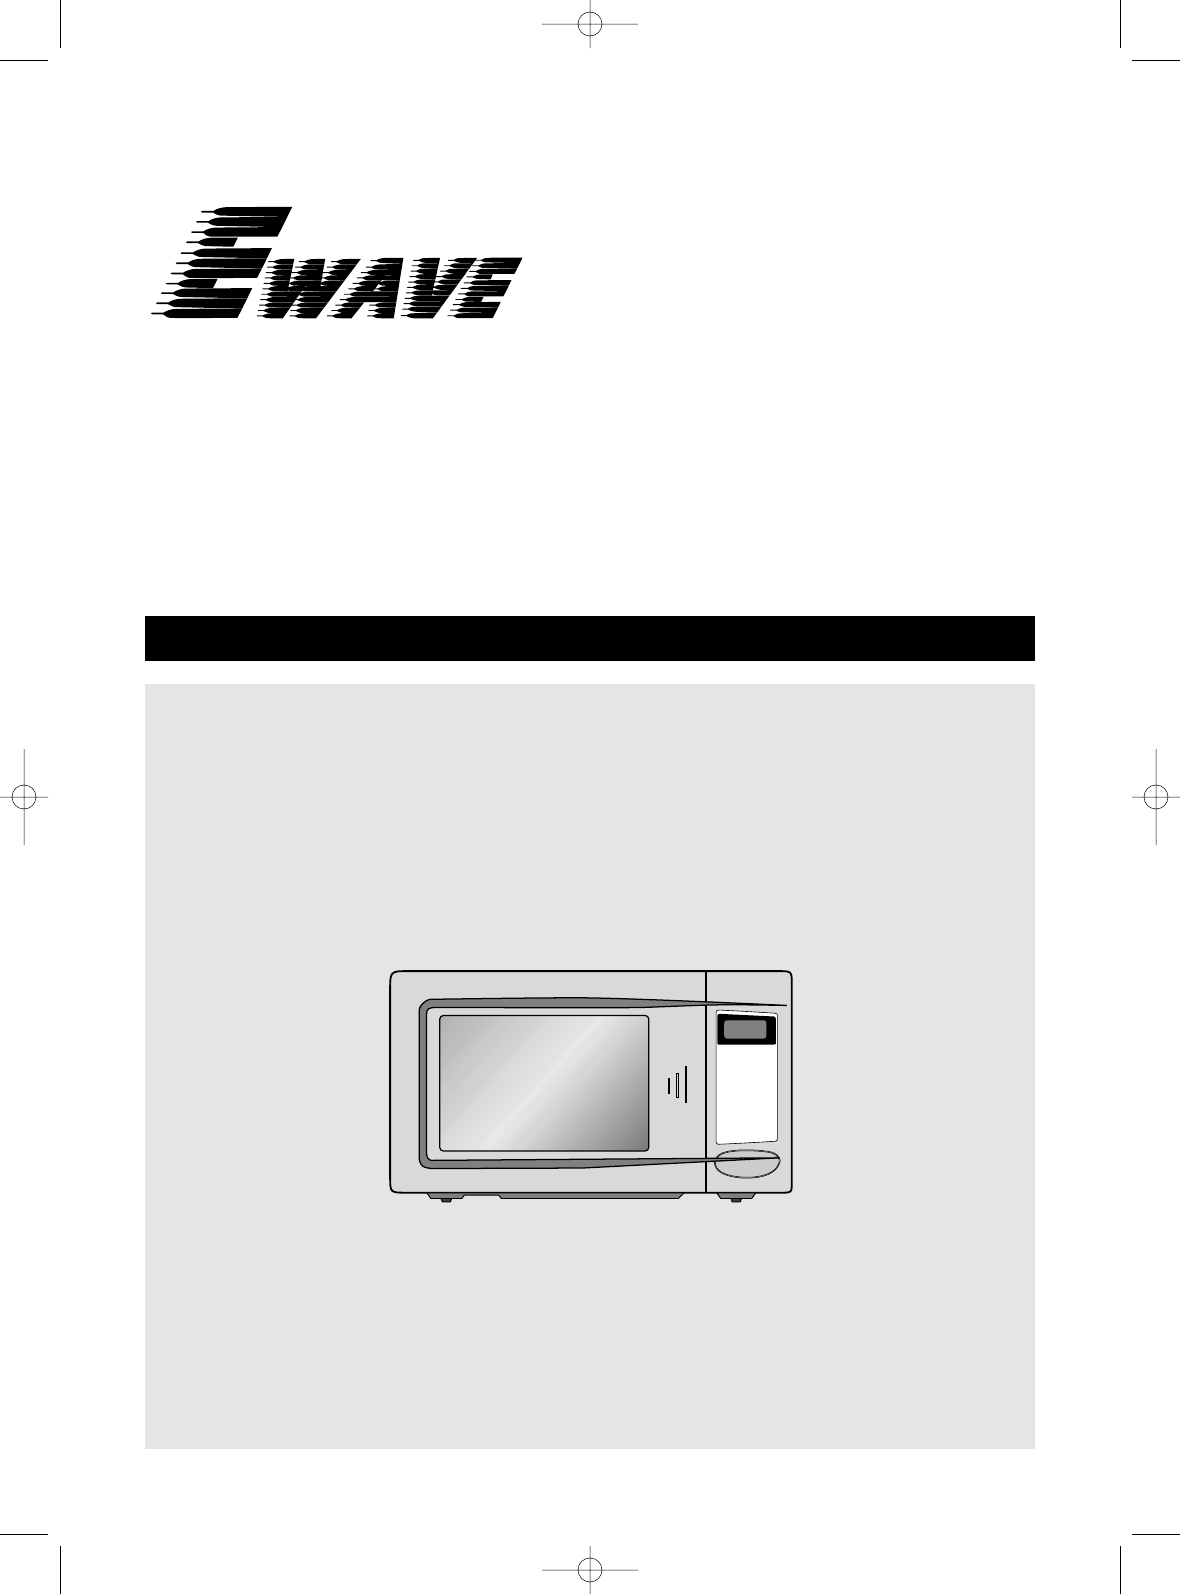 daewoo microwave oven ew6f6w user guide. Black Bedroom Furniture Sets. Home Design Ideas